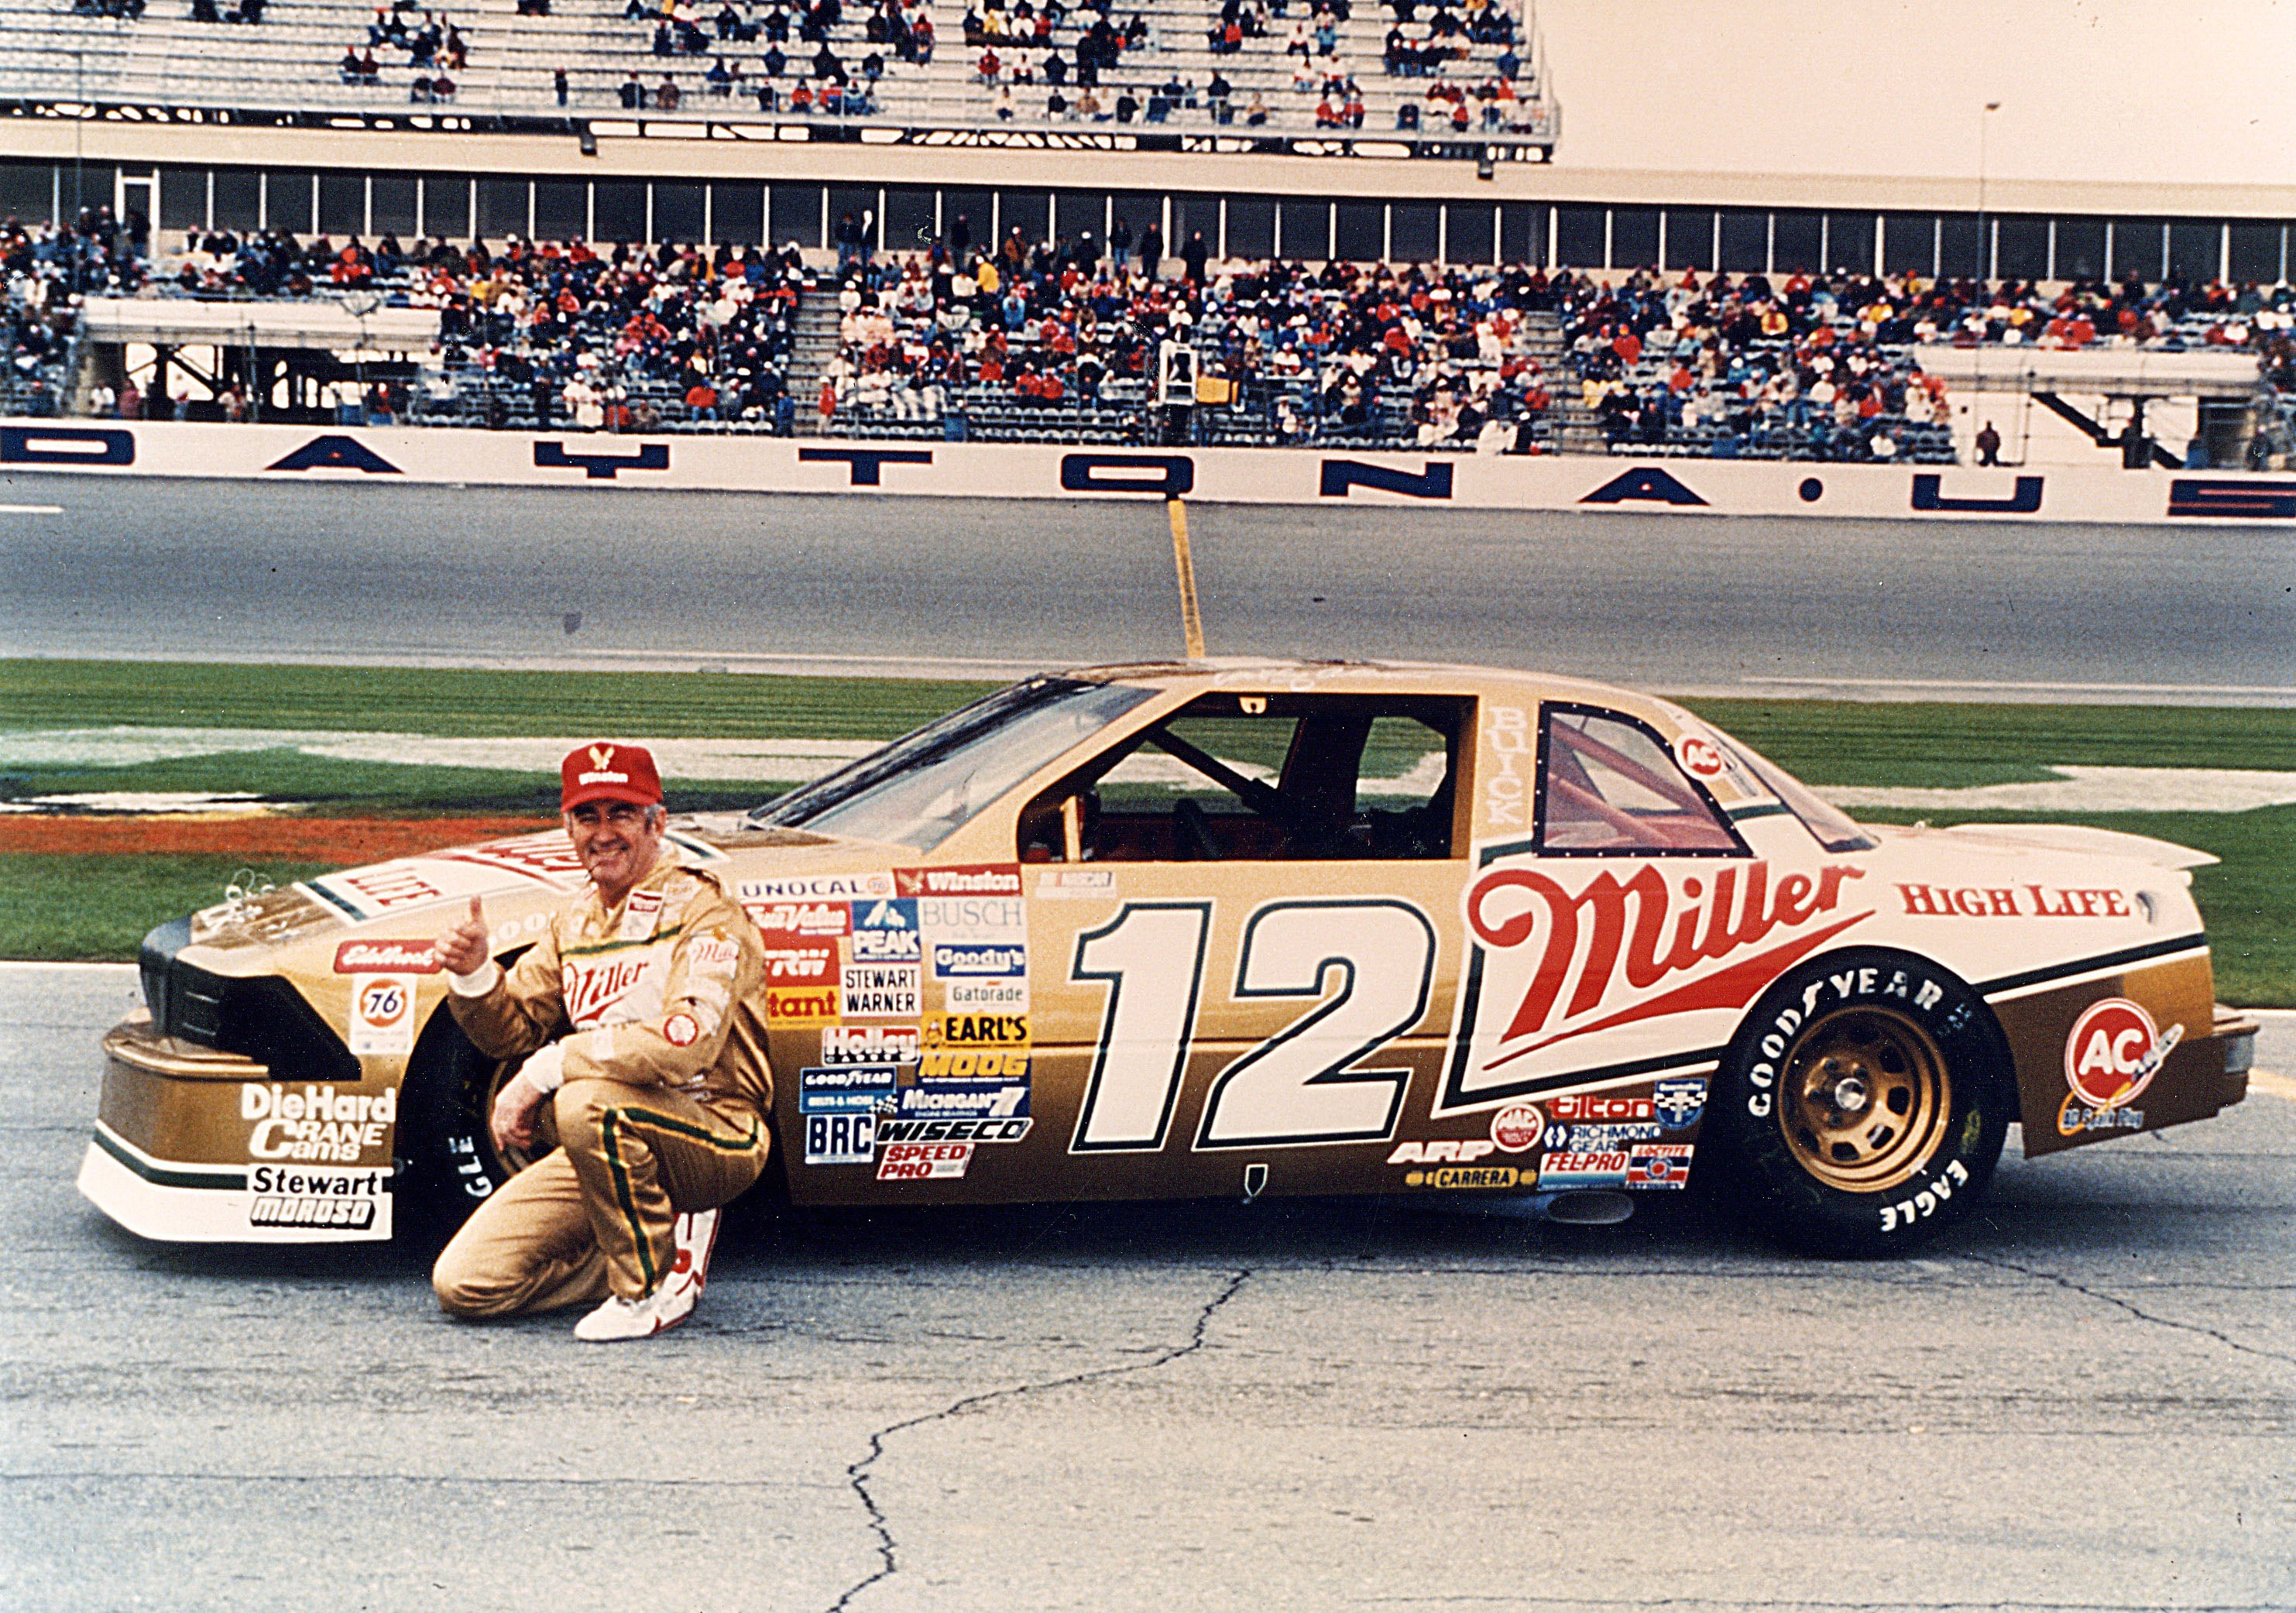 DAYTONA BEACH, FL - FEBRUARY 14, 1988:  Bobby Allison #12 topped his son, Davey, by two car lengths in the 1988 Daytona 500. It was only the second time in NASCAR Cup Series history that a father-son finished one-two. Lee and Richard Petty did it in 1960. The win was Allison's career last.  (Photo by ISC Archives via Getty Images)